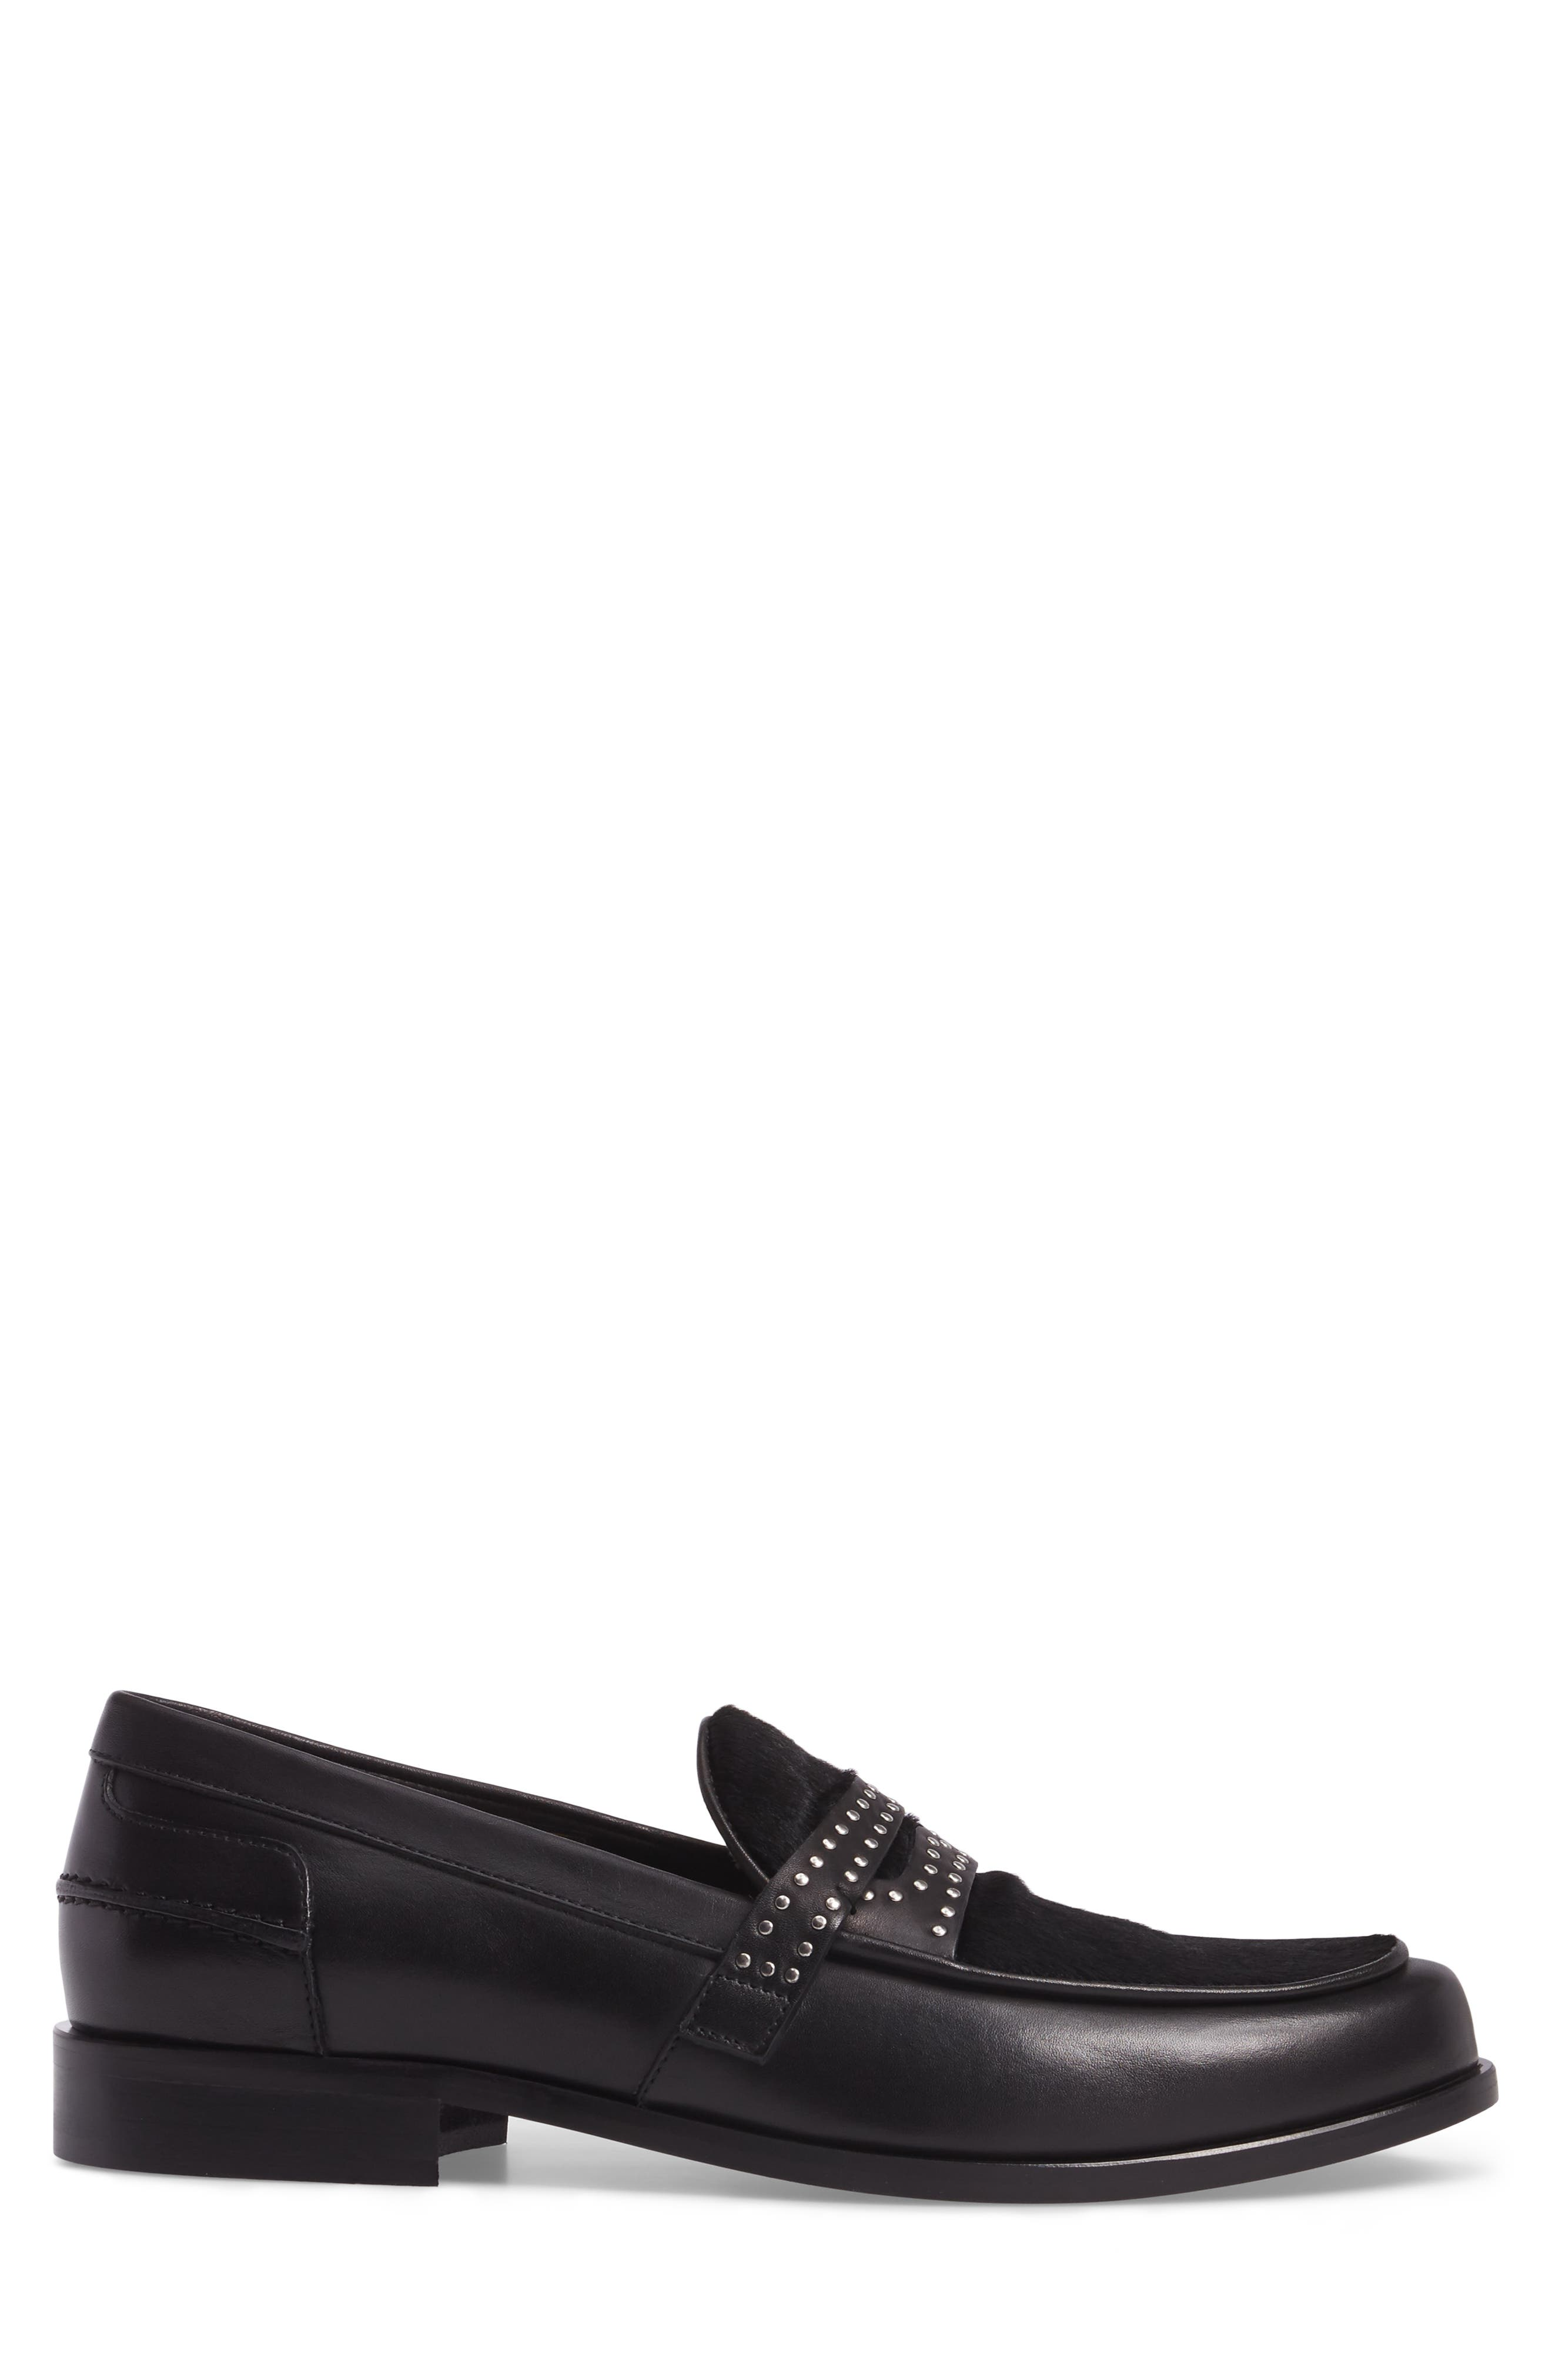 Sawyer Penny Loafer,                             Alternate thumbnail 3, color,                             001